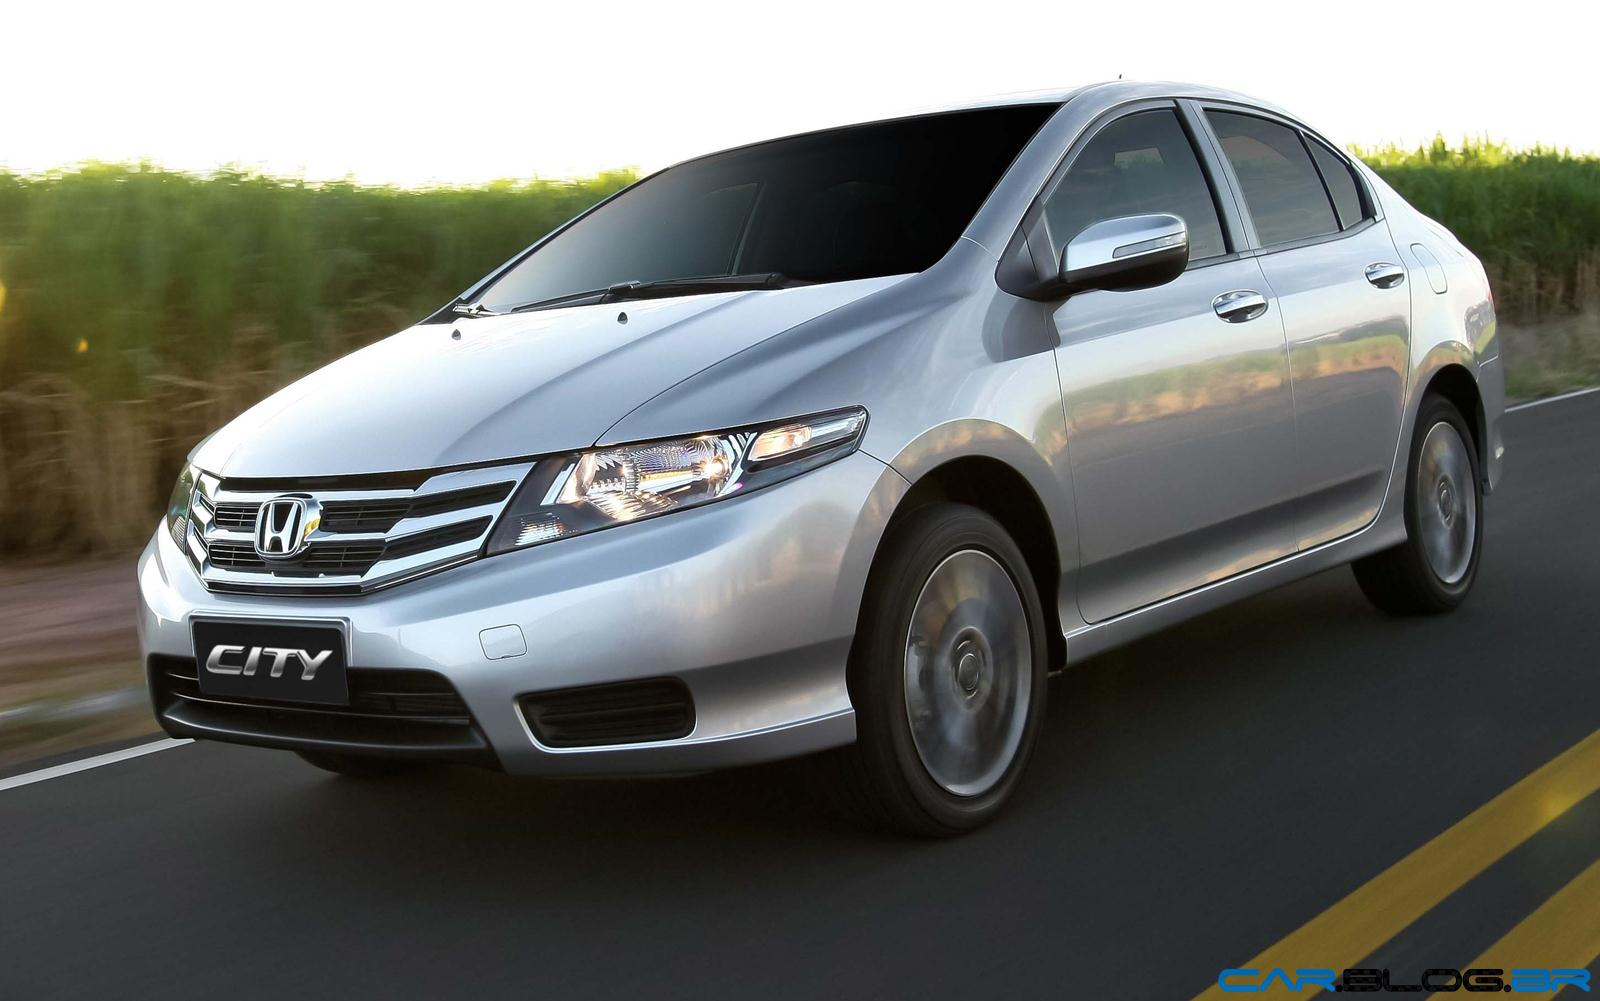 Honda city 2013 photo - 3